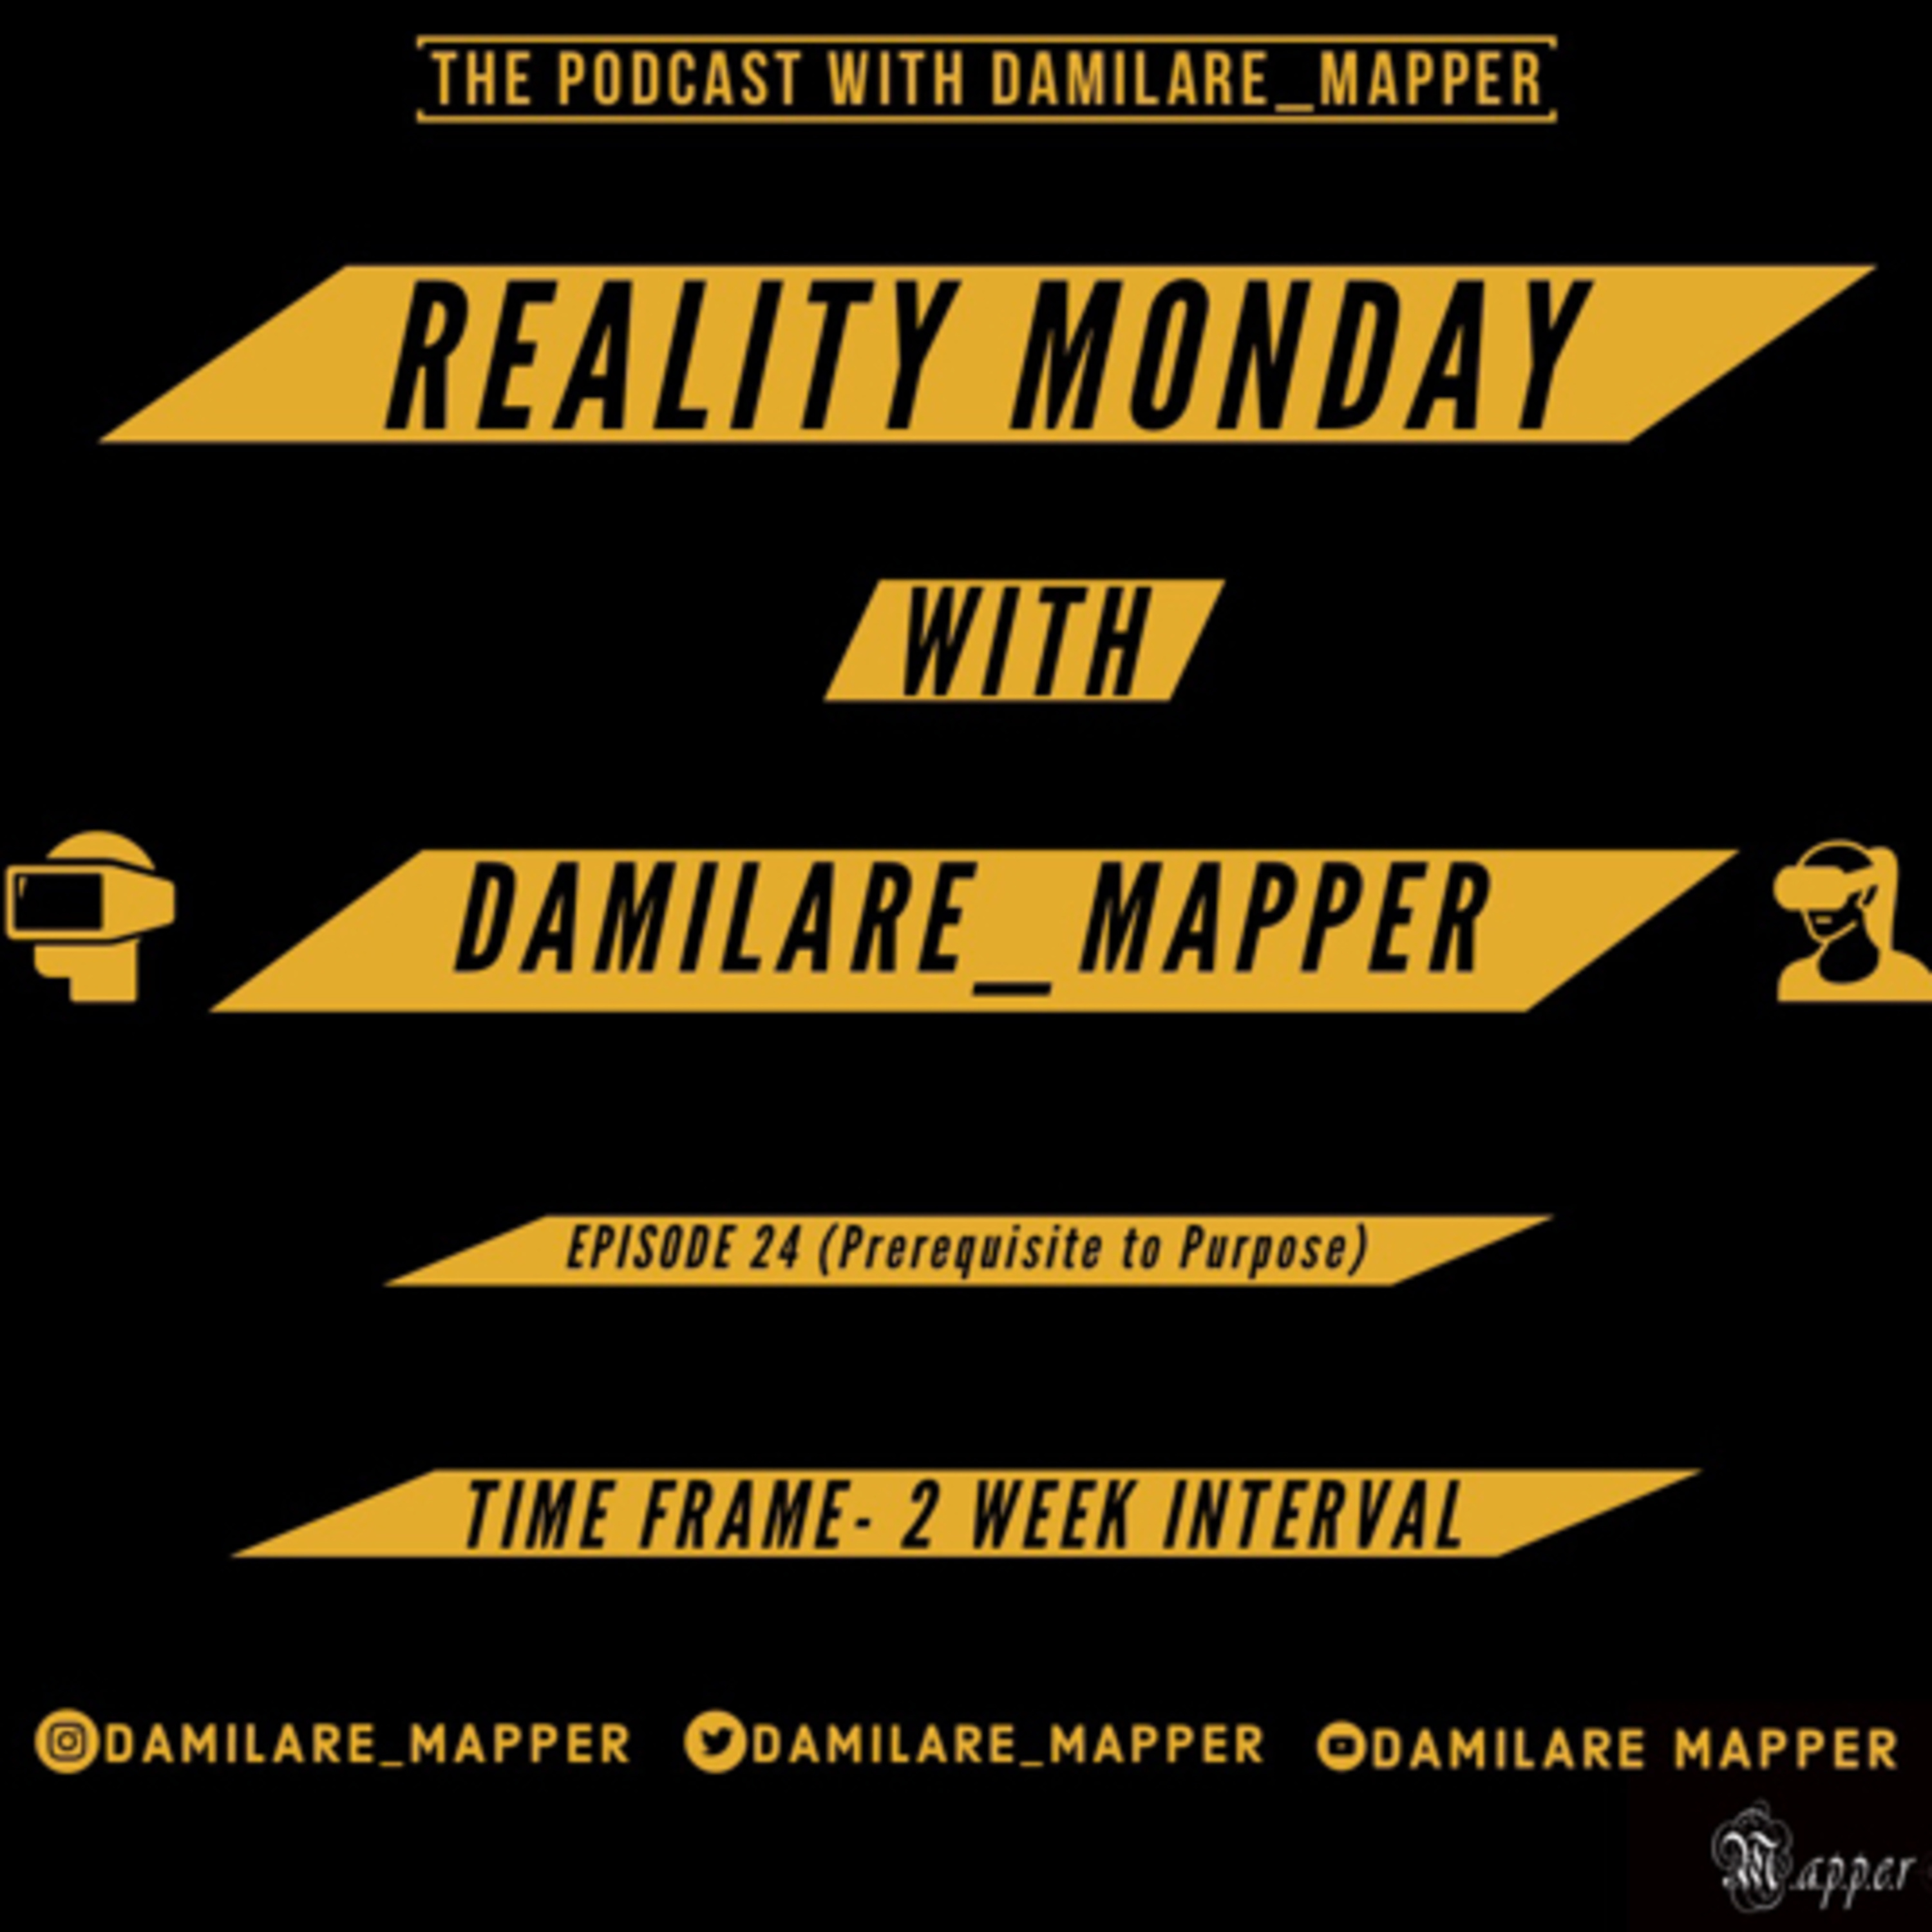 The Podcast With Damilare_Mapper on Jamit